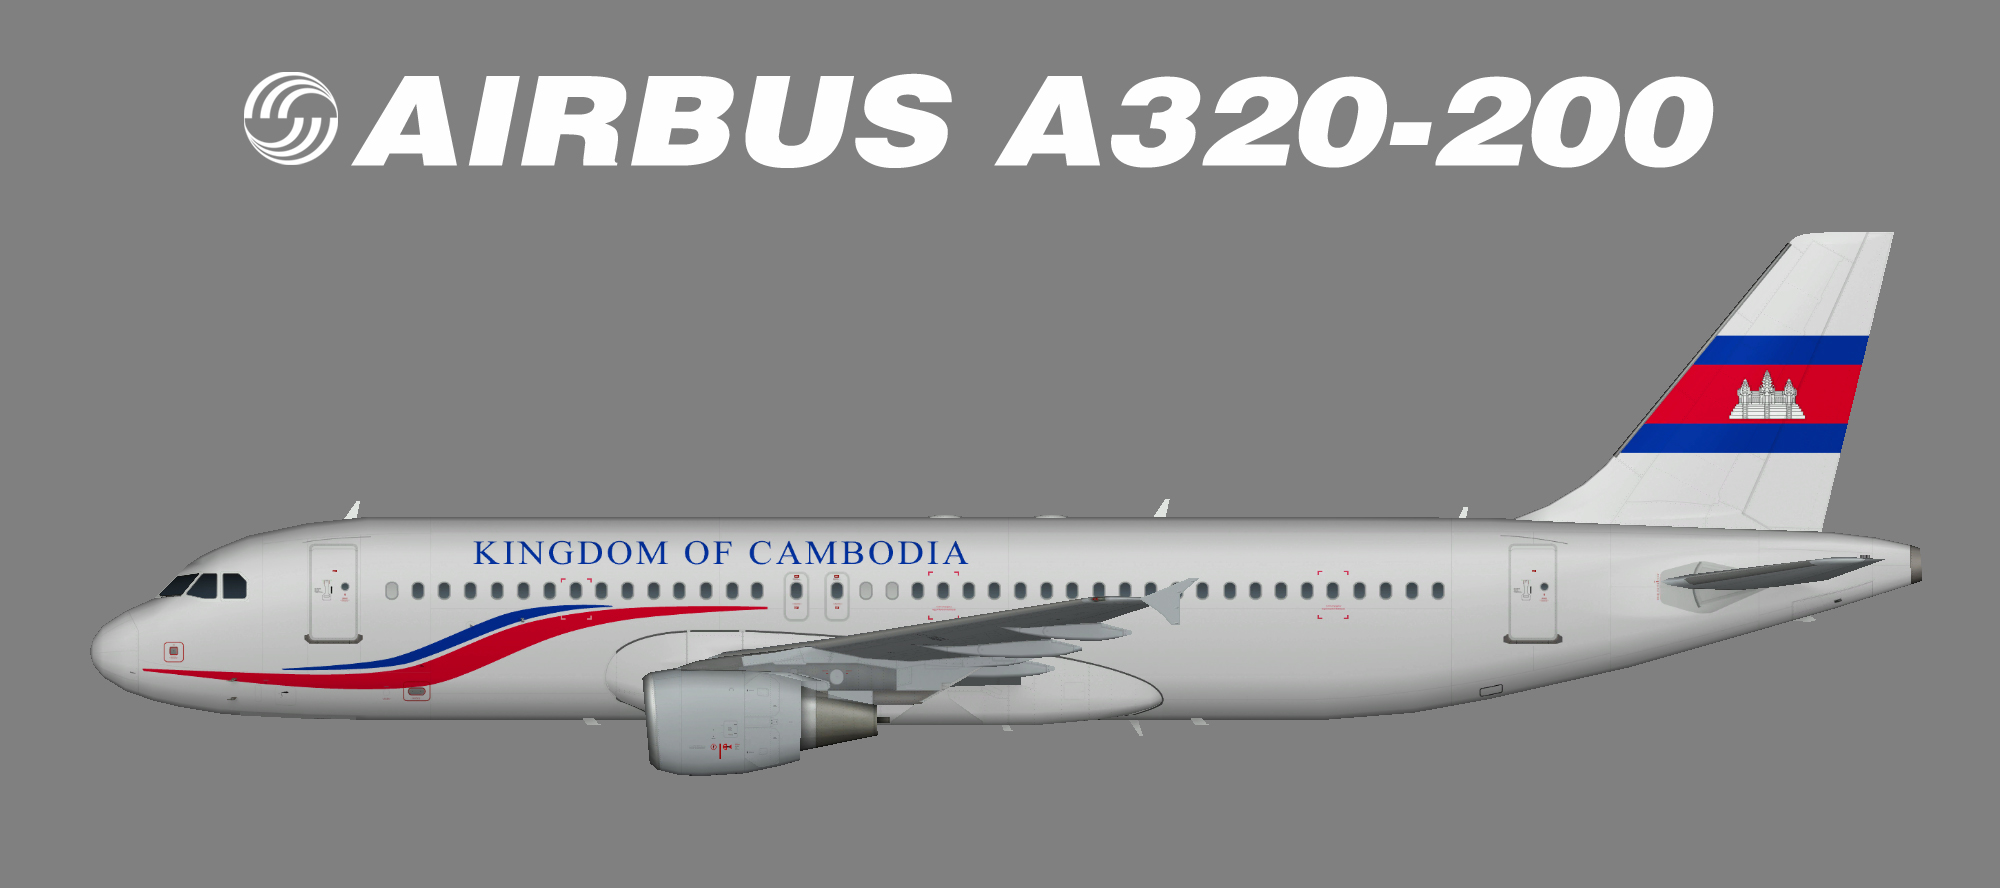 Kingdom of Cambodia A320-200